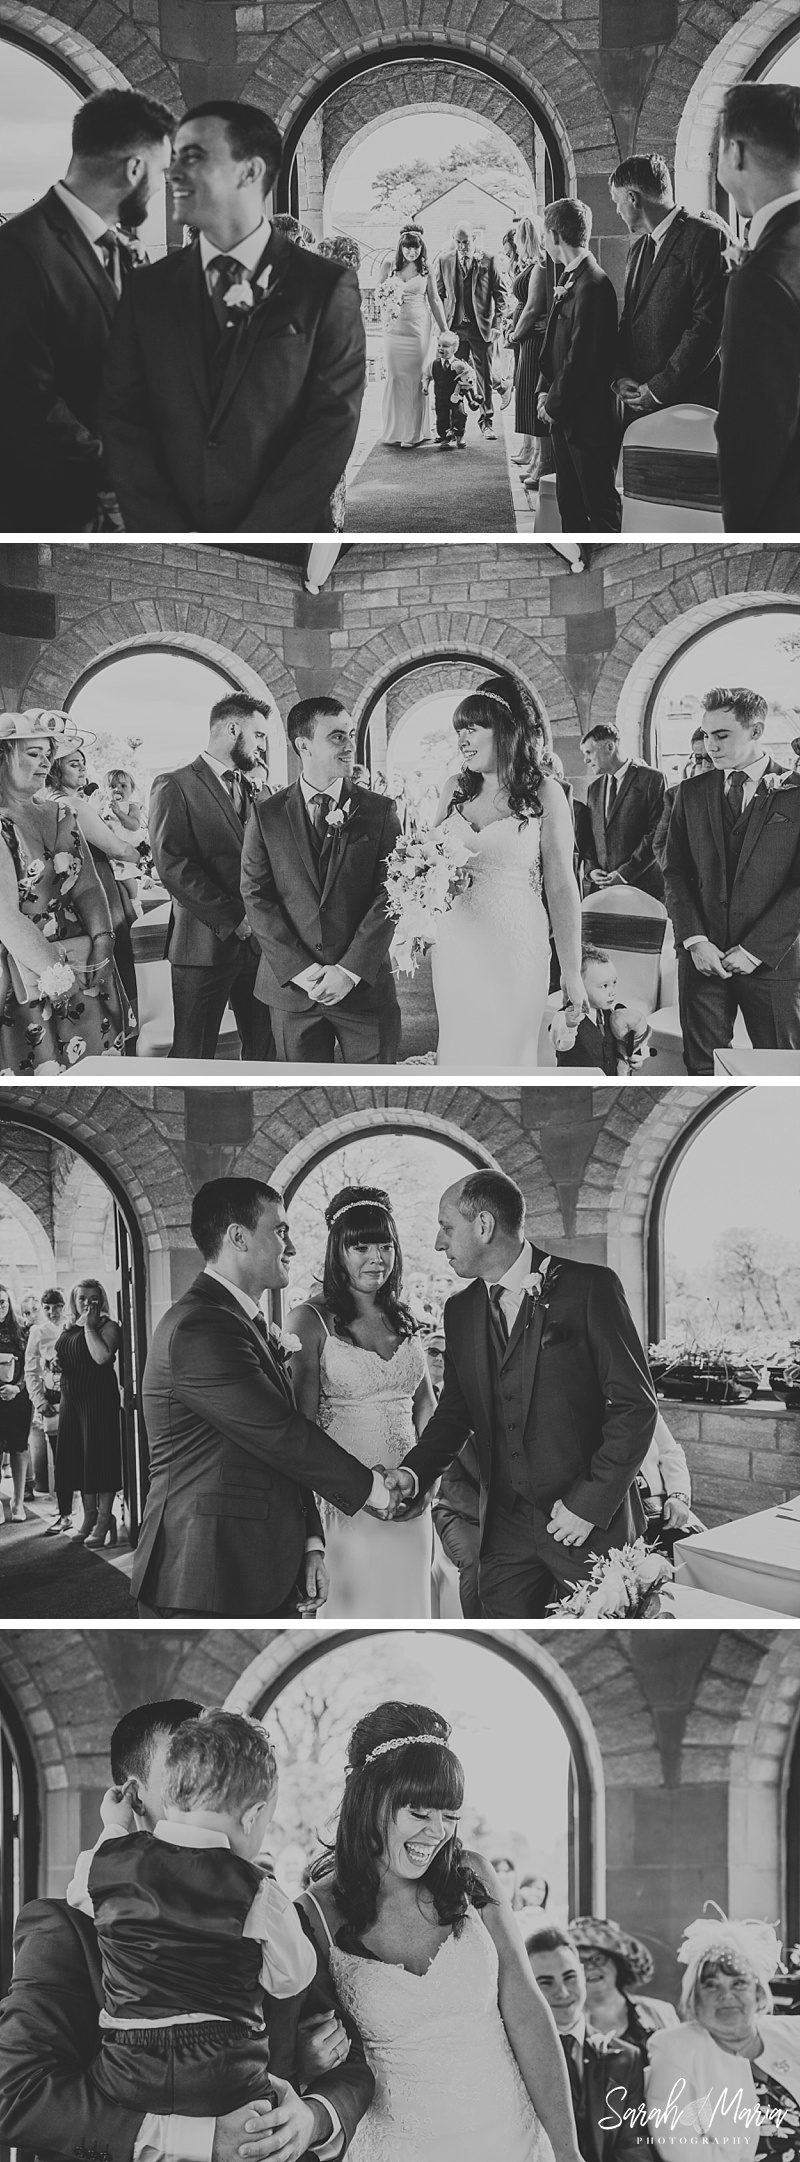 photographs of a bride walking up the aisle and during the ceremony of the wedding inside the dovecote at Ferraris country house